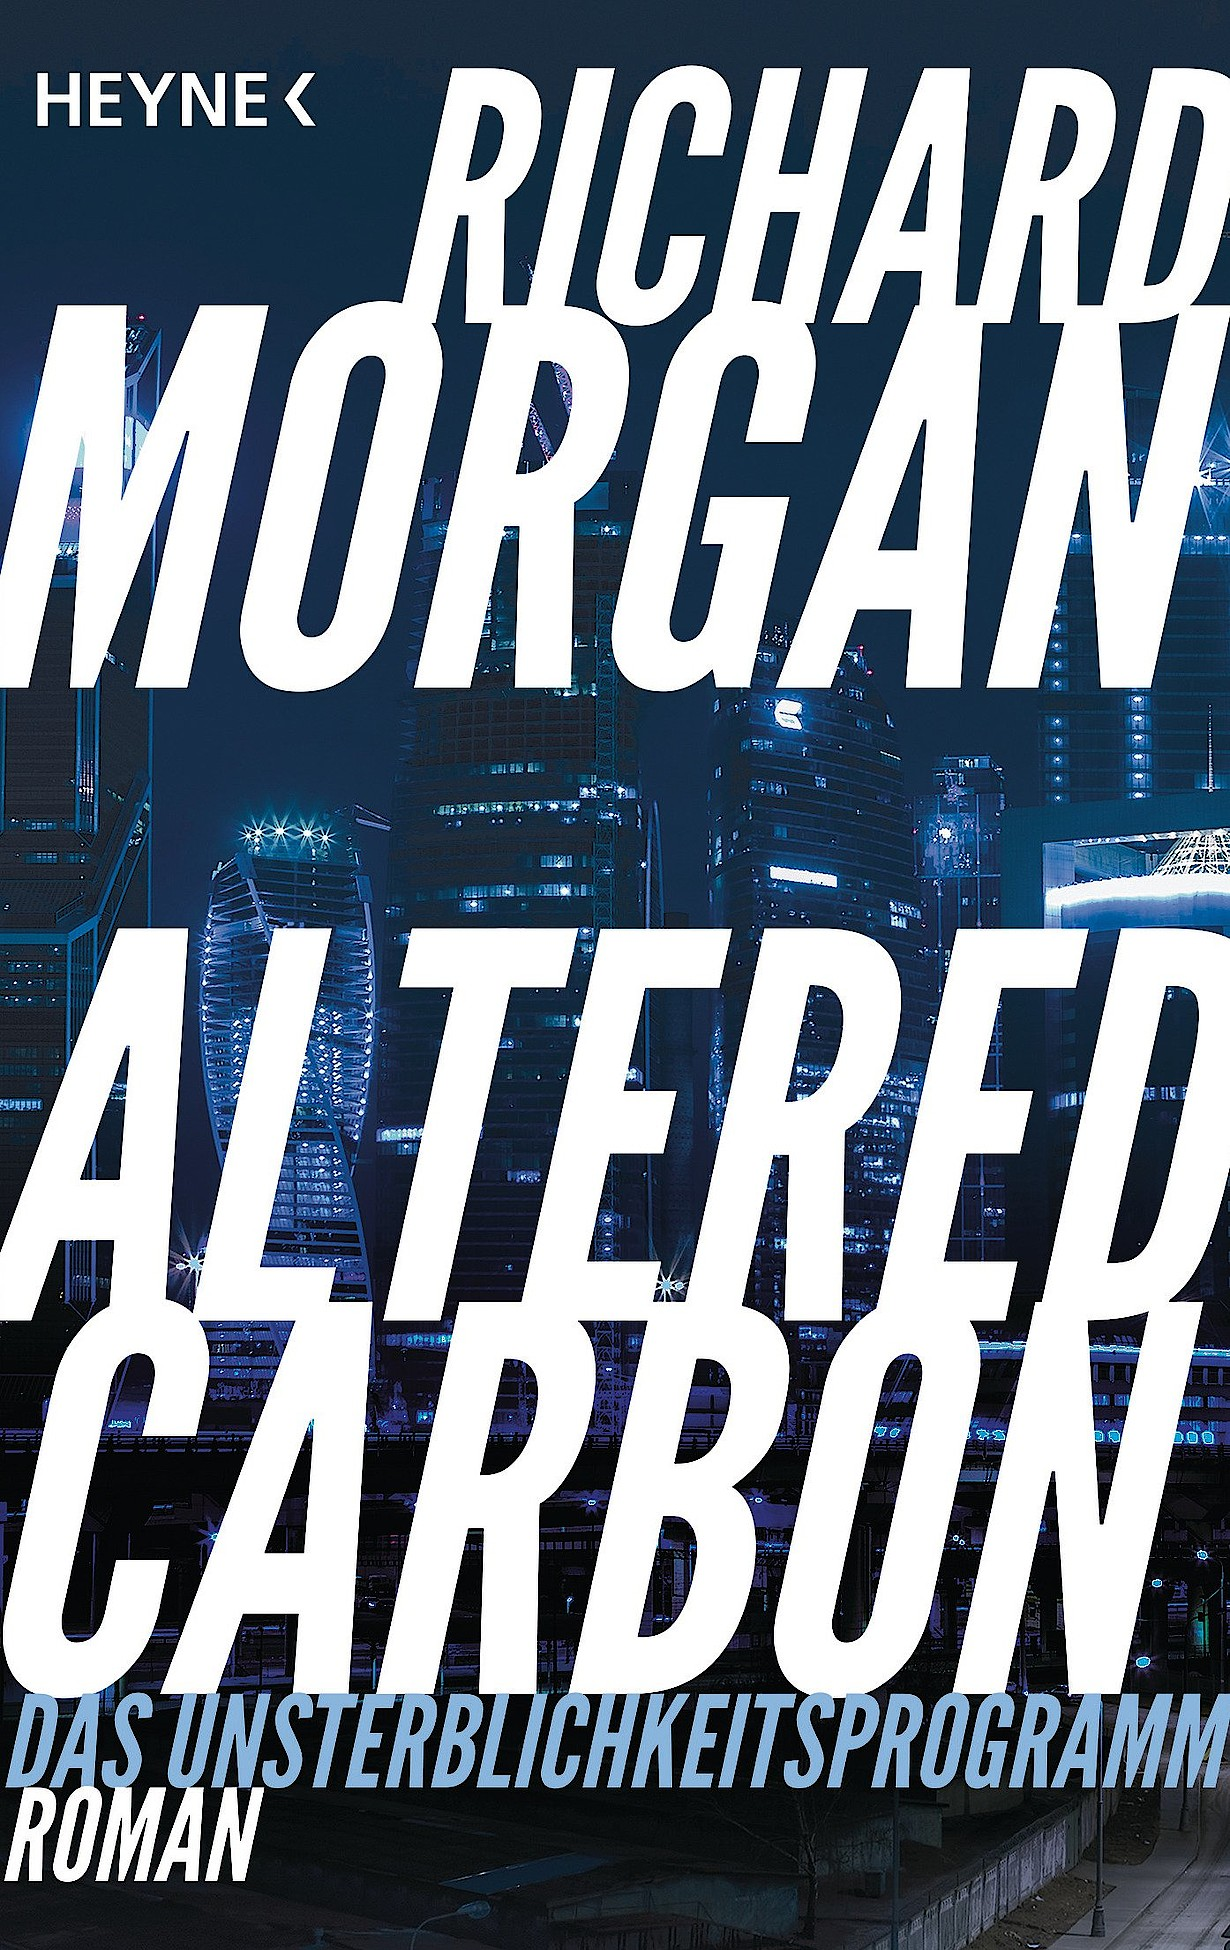 Altered Carbon - Das Unsterblichkeitsprogramm von Richard Morgan bei Amazon bestellen